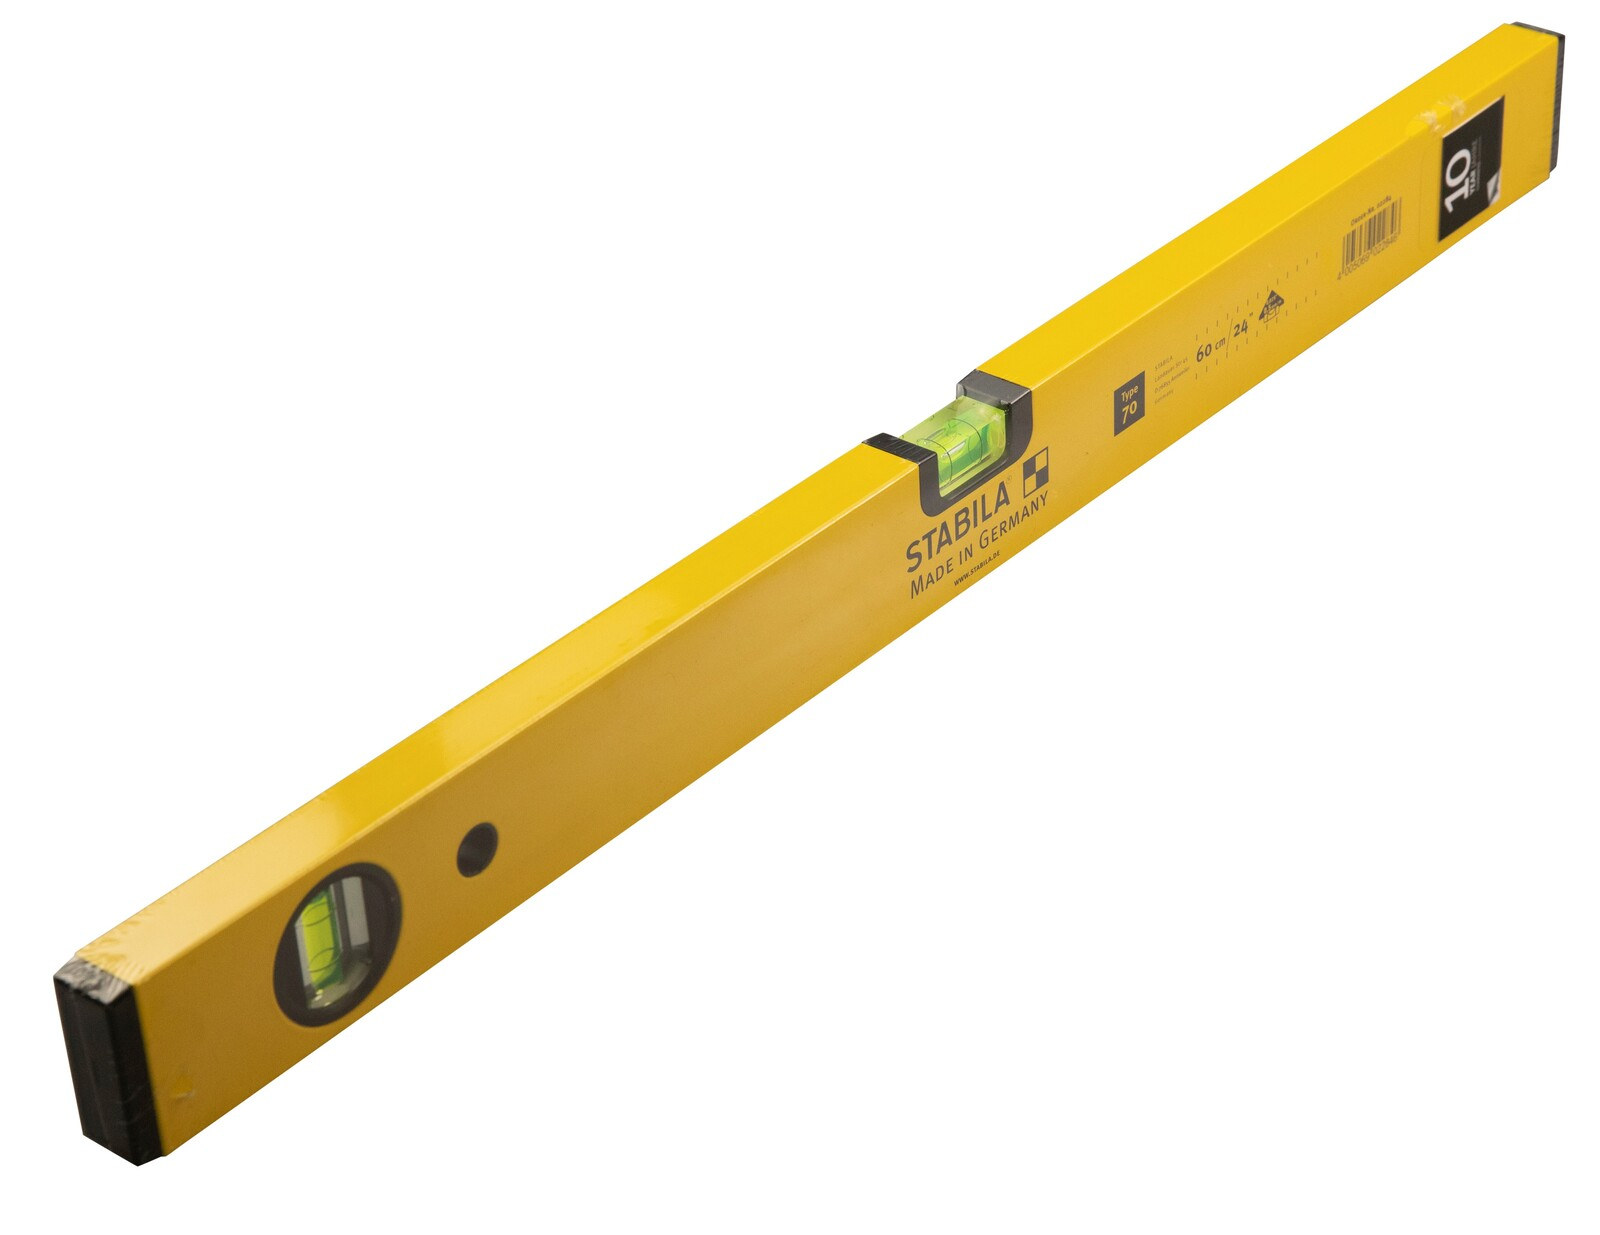 Stabila 600mm Level - Yellow